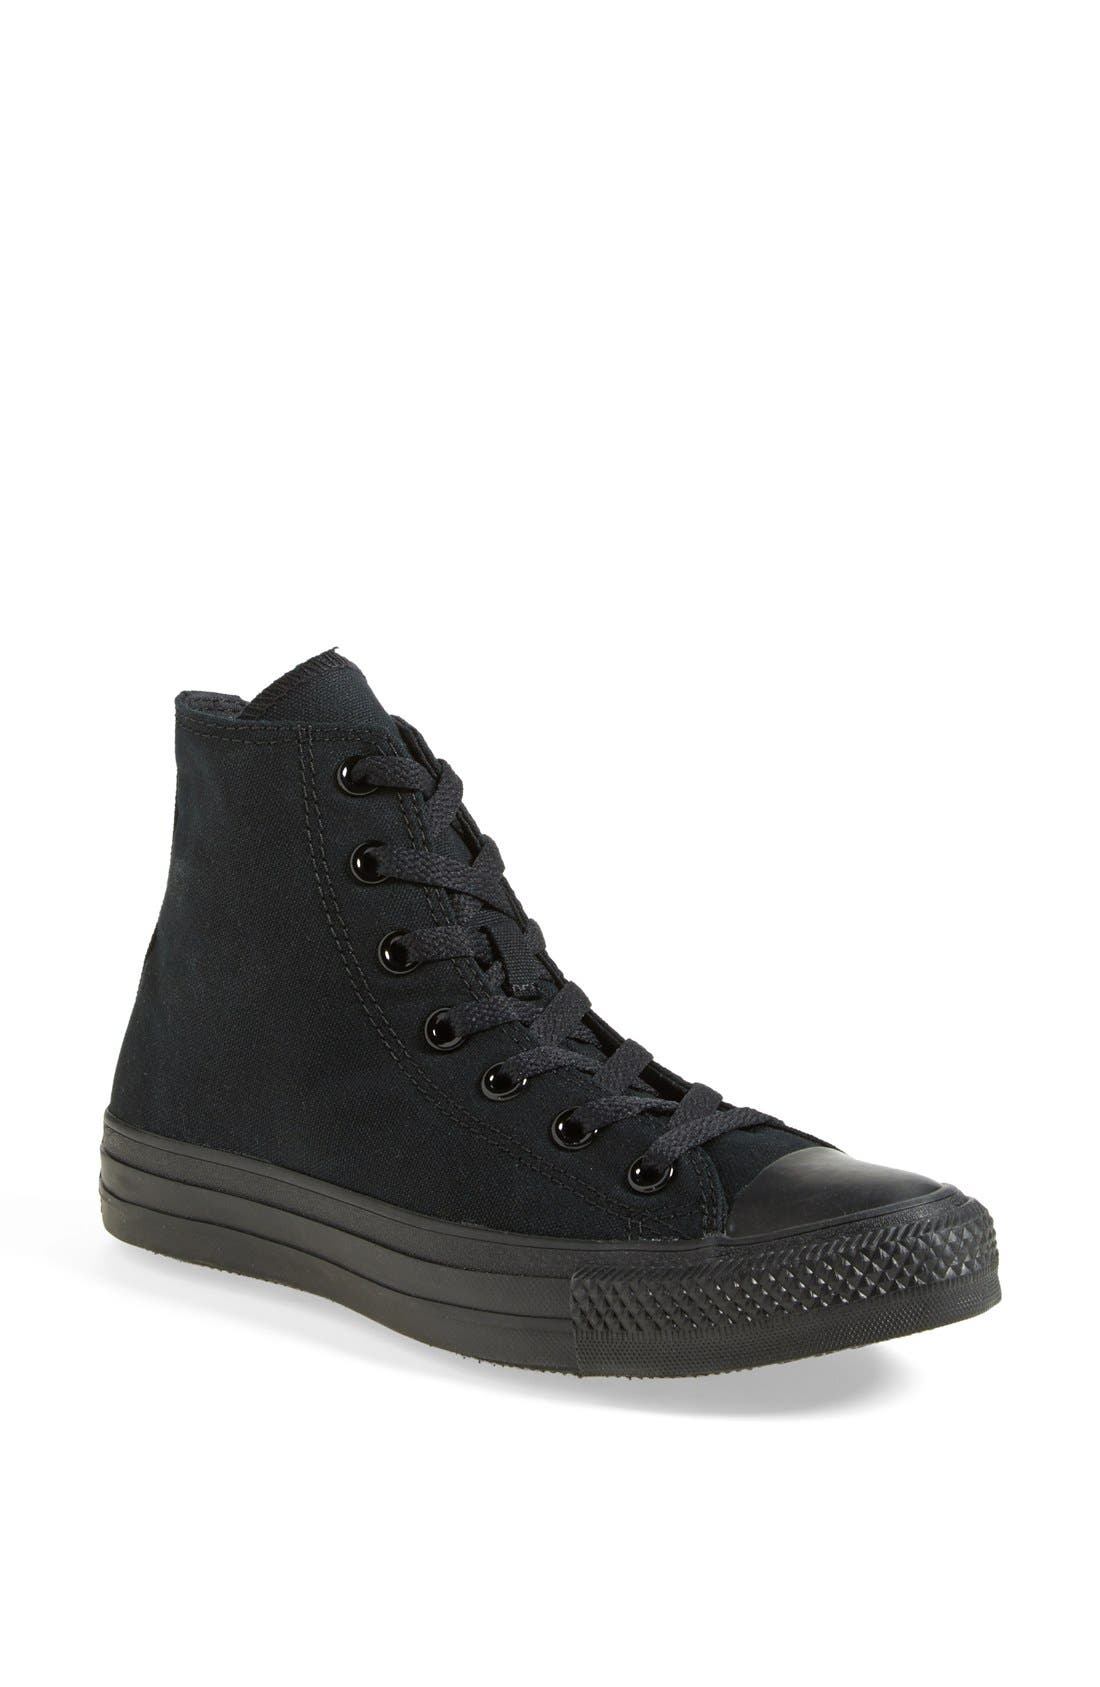 CONVERSE Chuck Taylor<sup>®</sup> All Star<sup>®</sup> High Top Sneaker, Main, color, 006